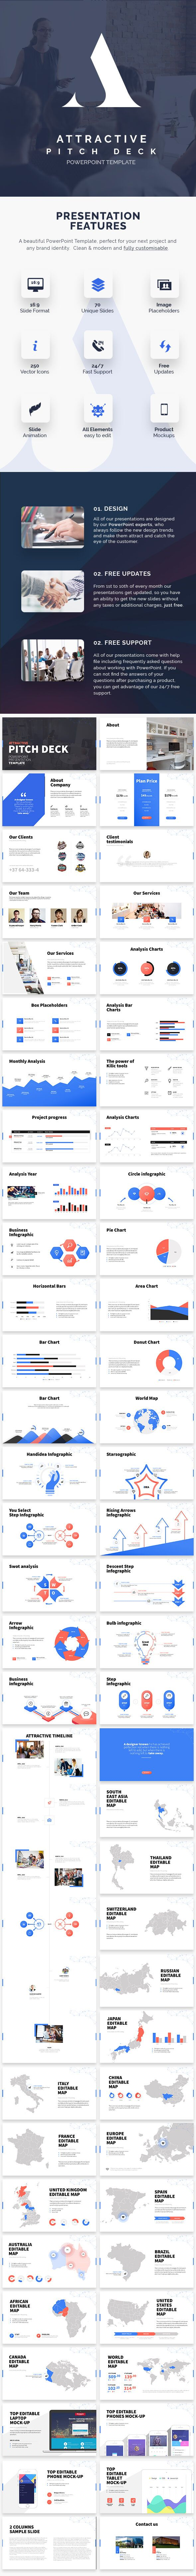 Attractive pitch deck powerpoint presentation business attractive pitch deck powerpoint presentation business powerpoint templatescreative toneelgroepblik Image collections